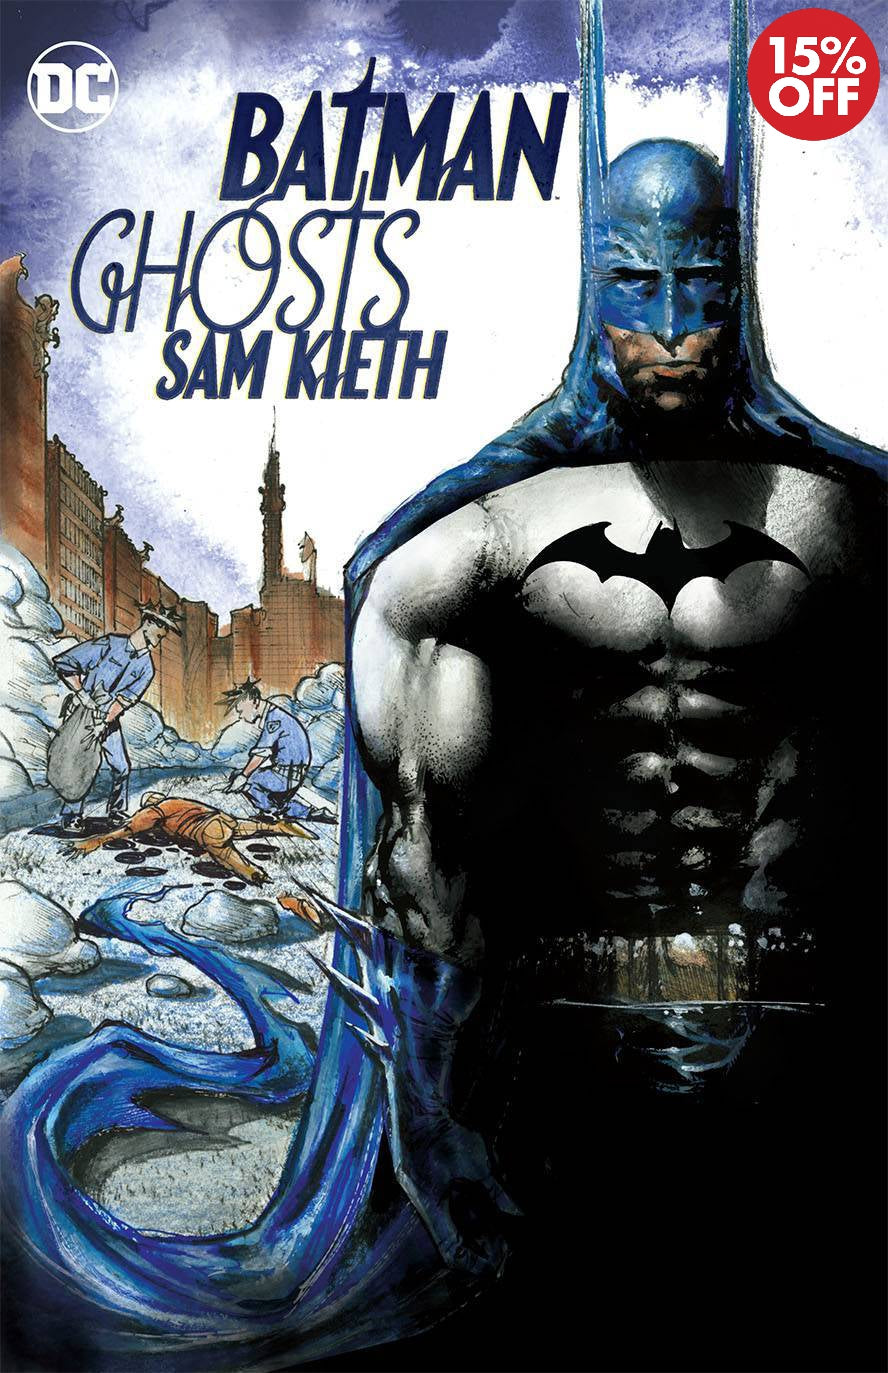 BATMAN GHOSTS TP